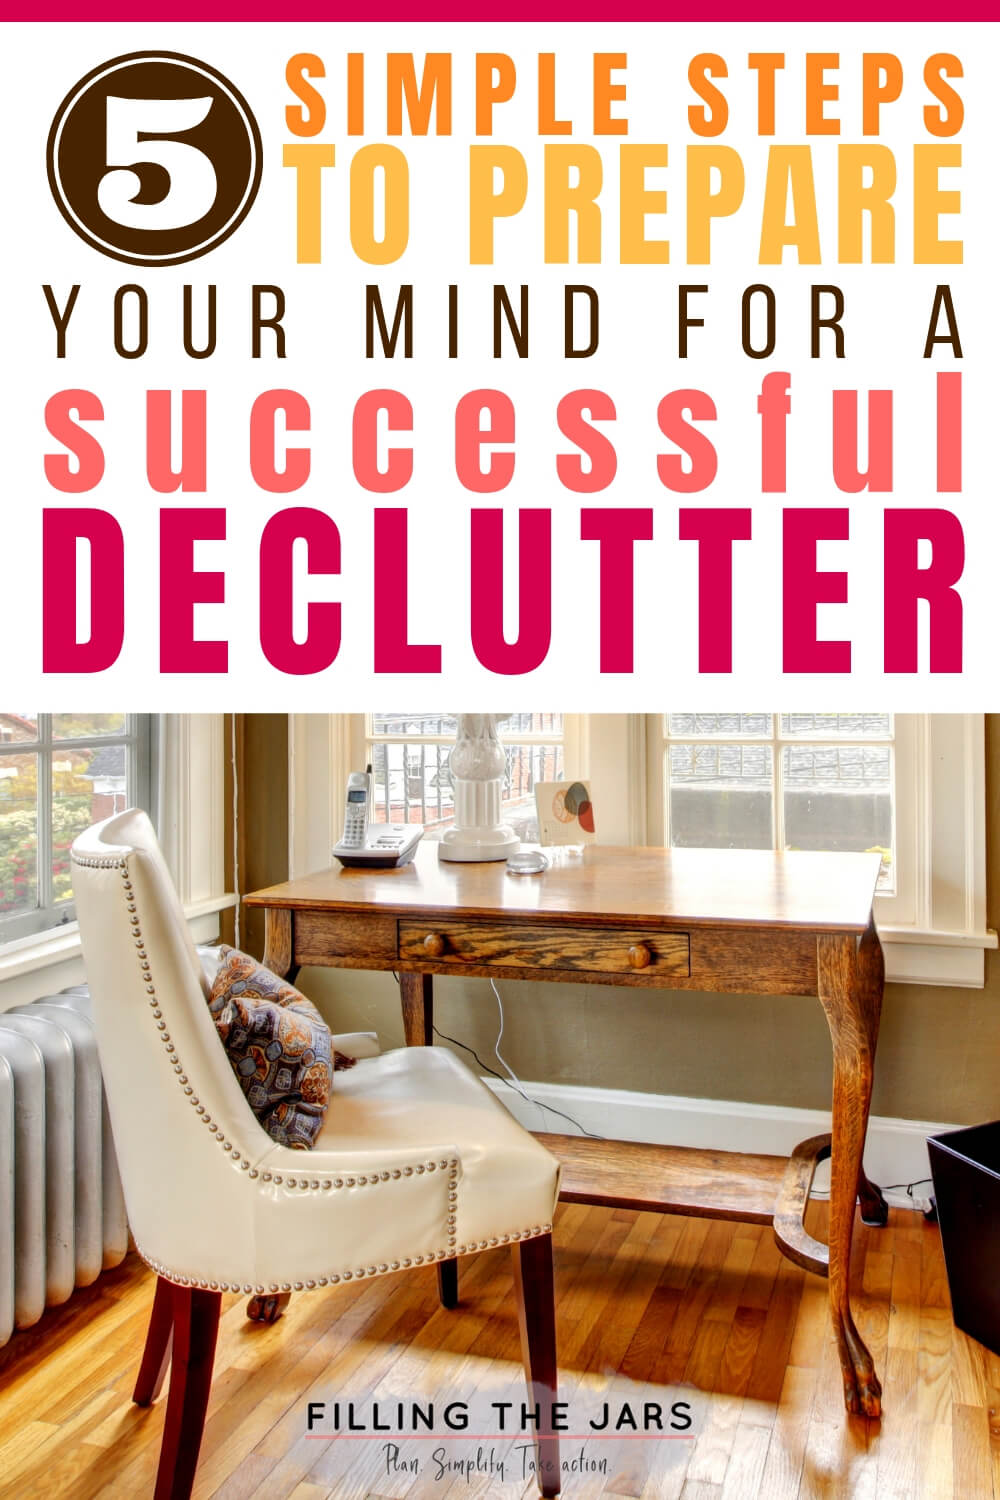 home office background with text overlay prepare your mind for a successful declutter